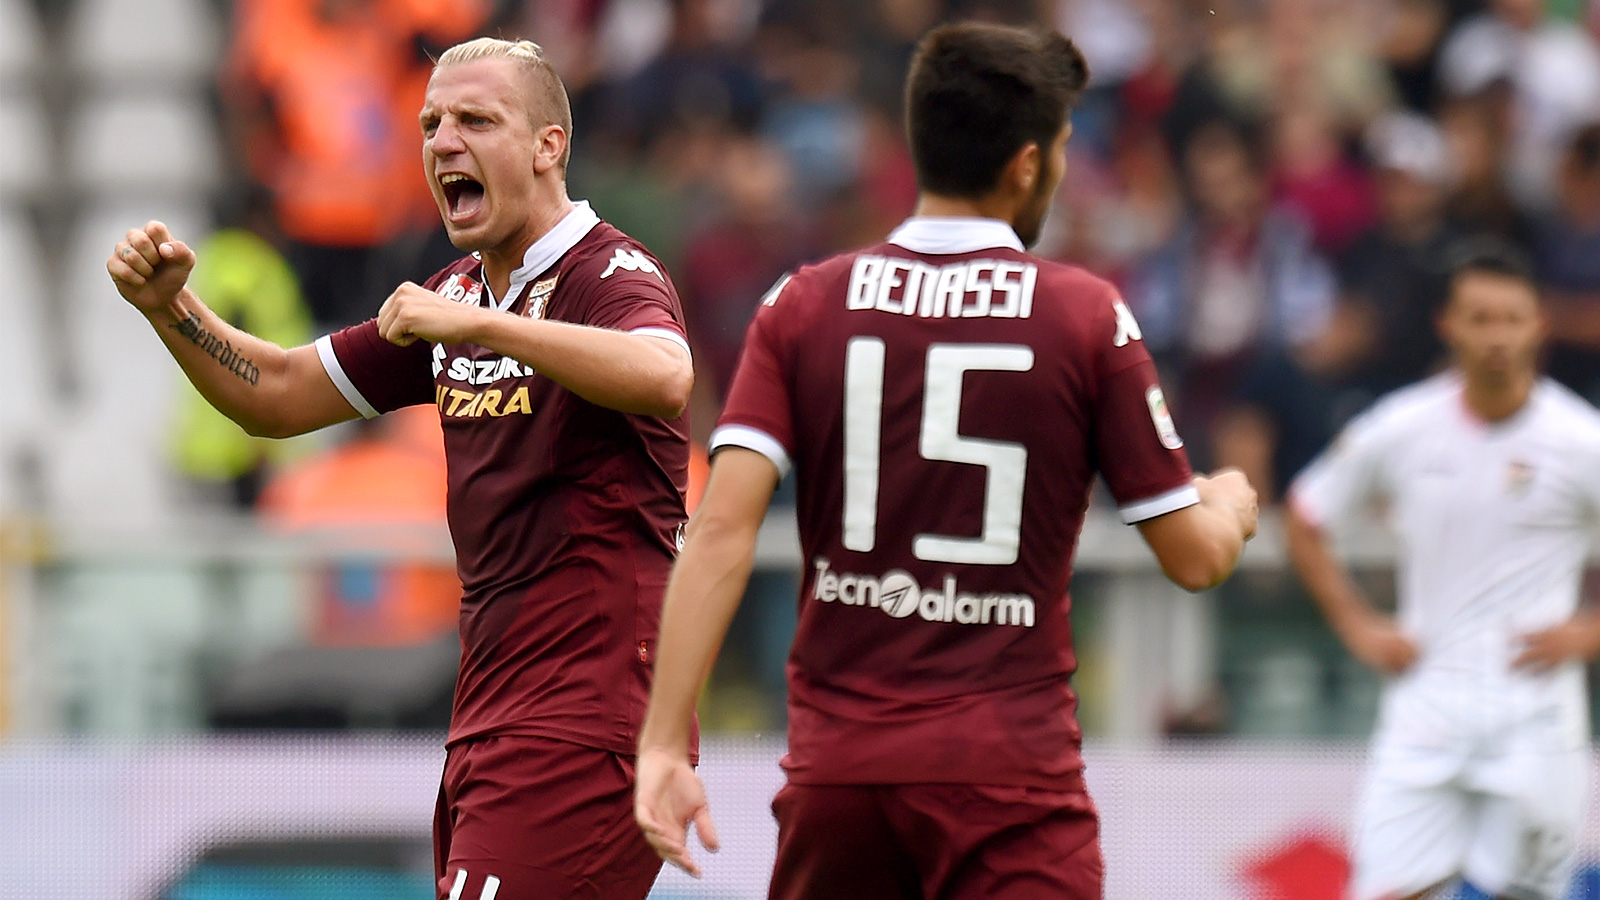 Serie A: Torino beat Palermo to move 2nd as Sassuolo and Chievo draw